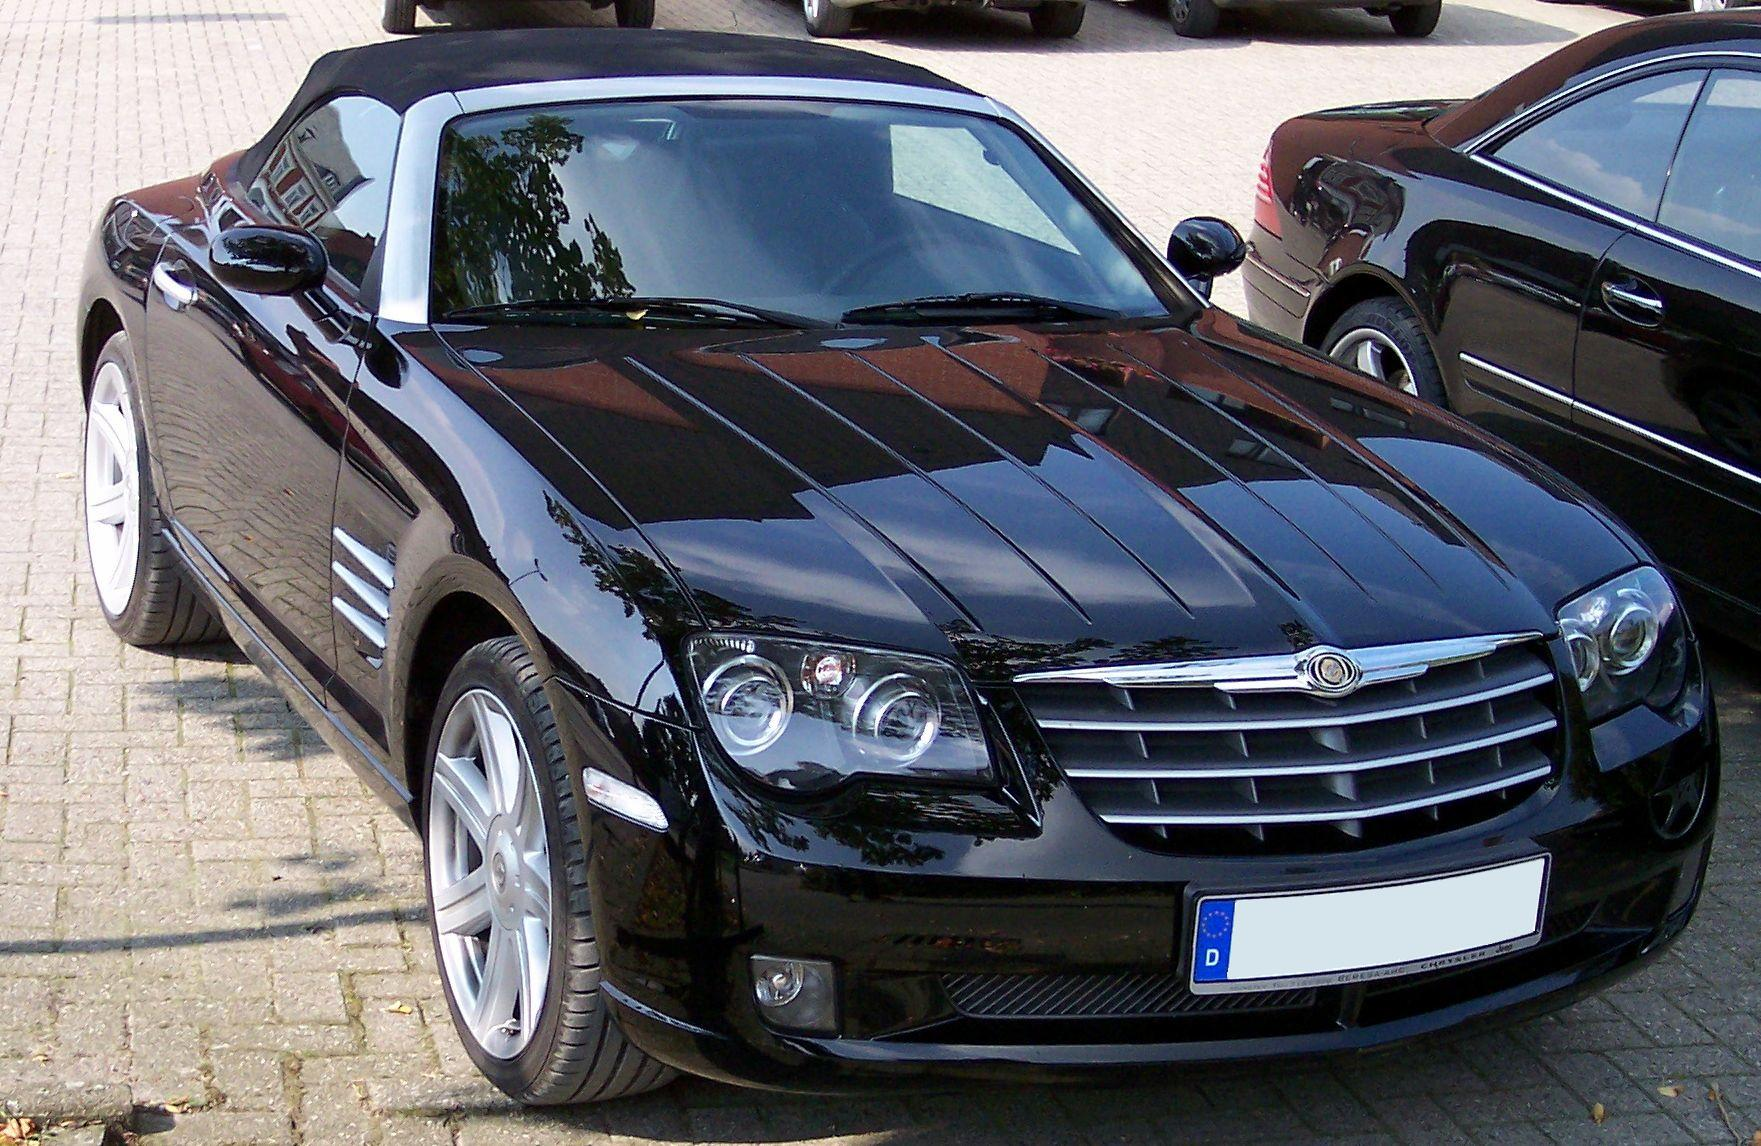 download carina chrysler new image crossfire car wallpaper sports